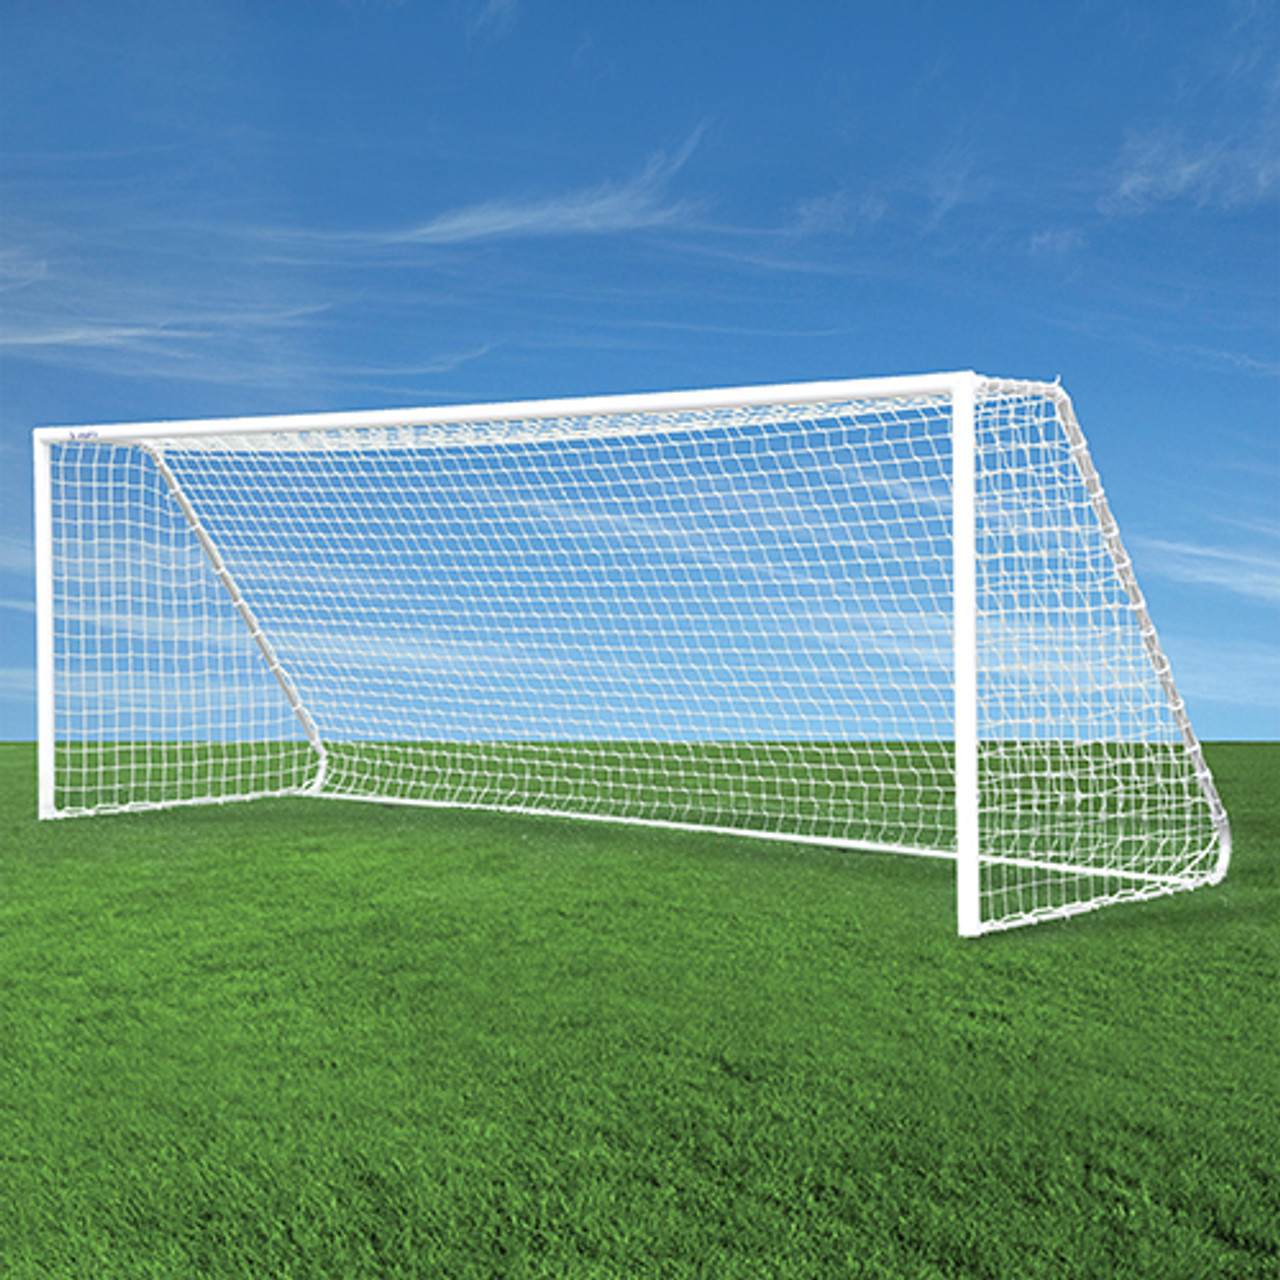 JayPro 8x24 full size regulation soccer goals